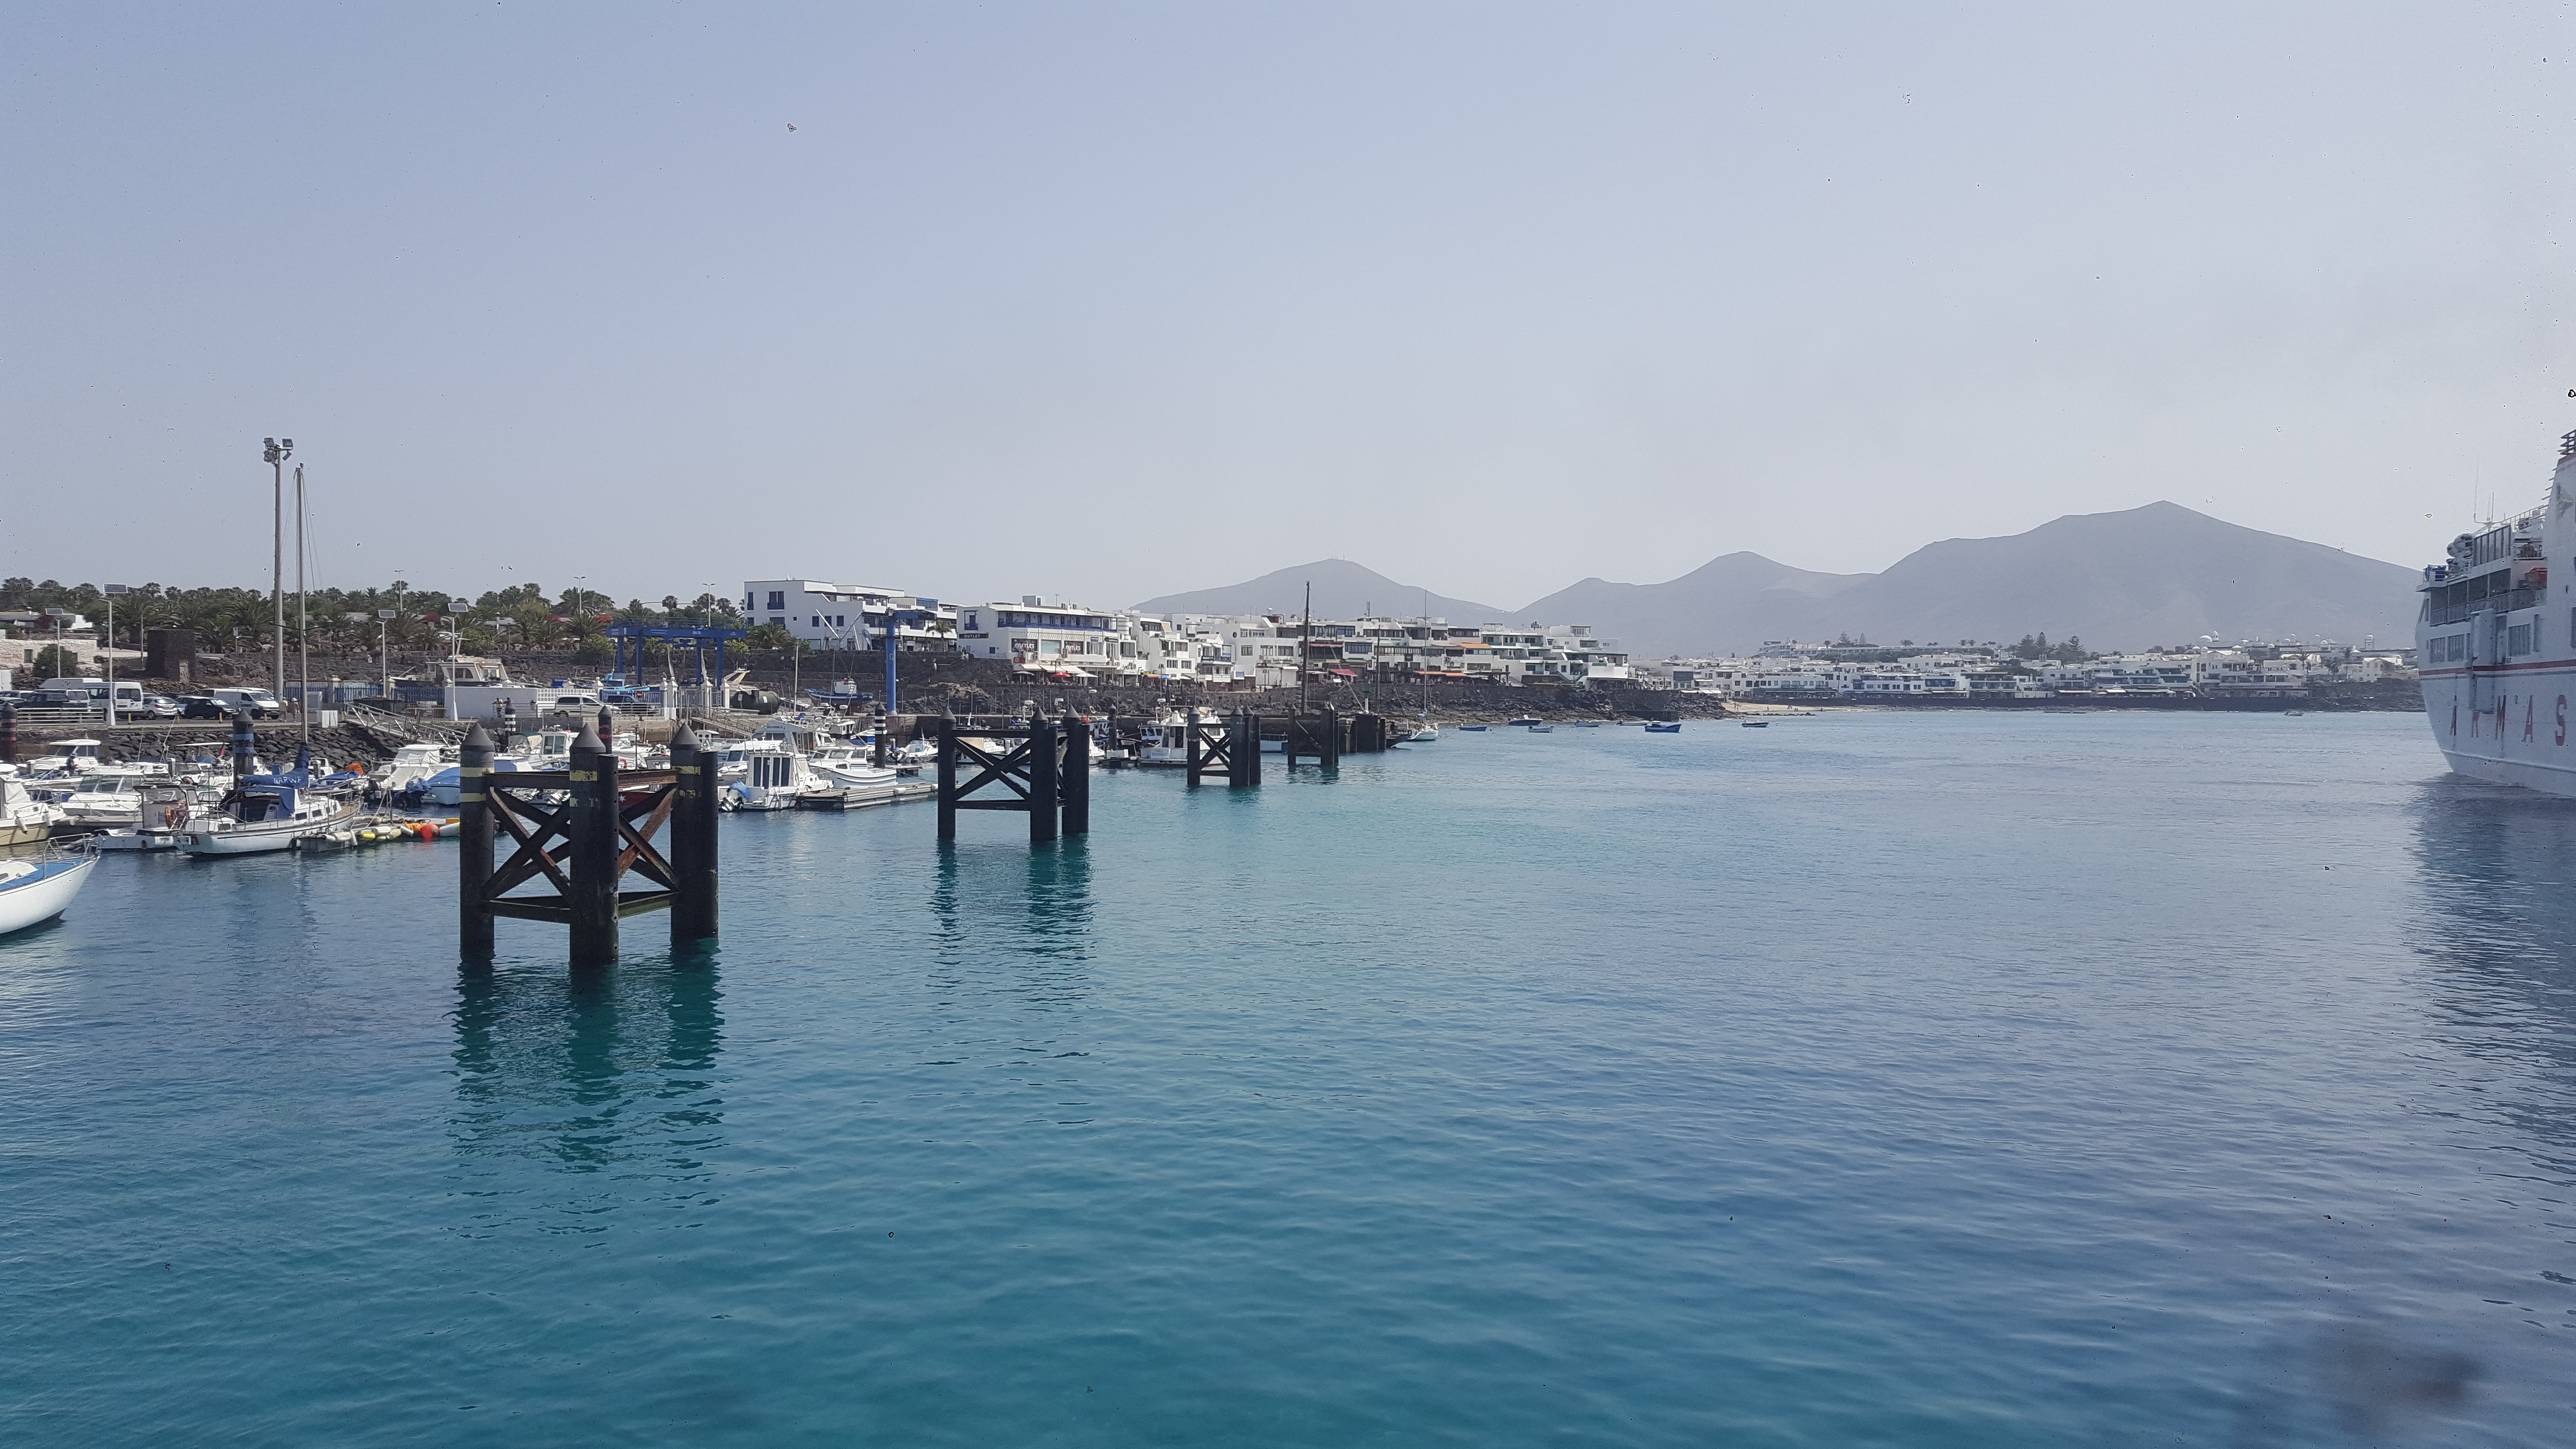 Port of Playa Blanca